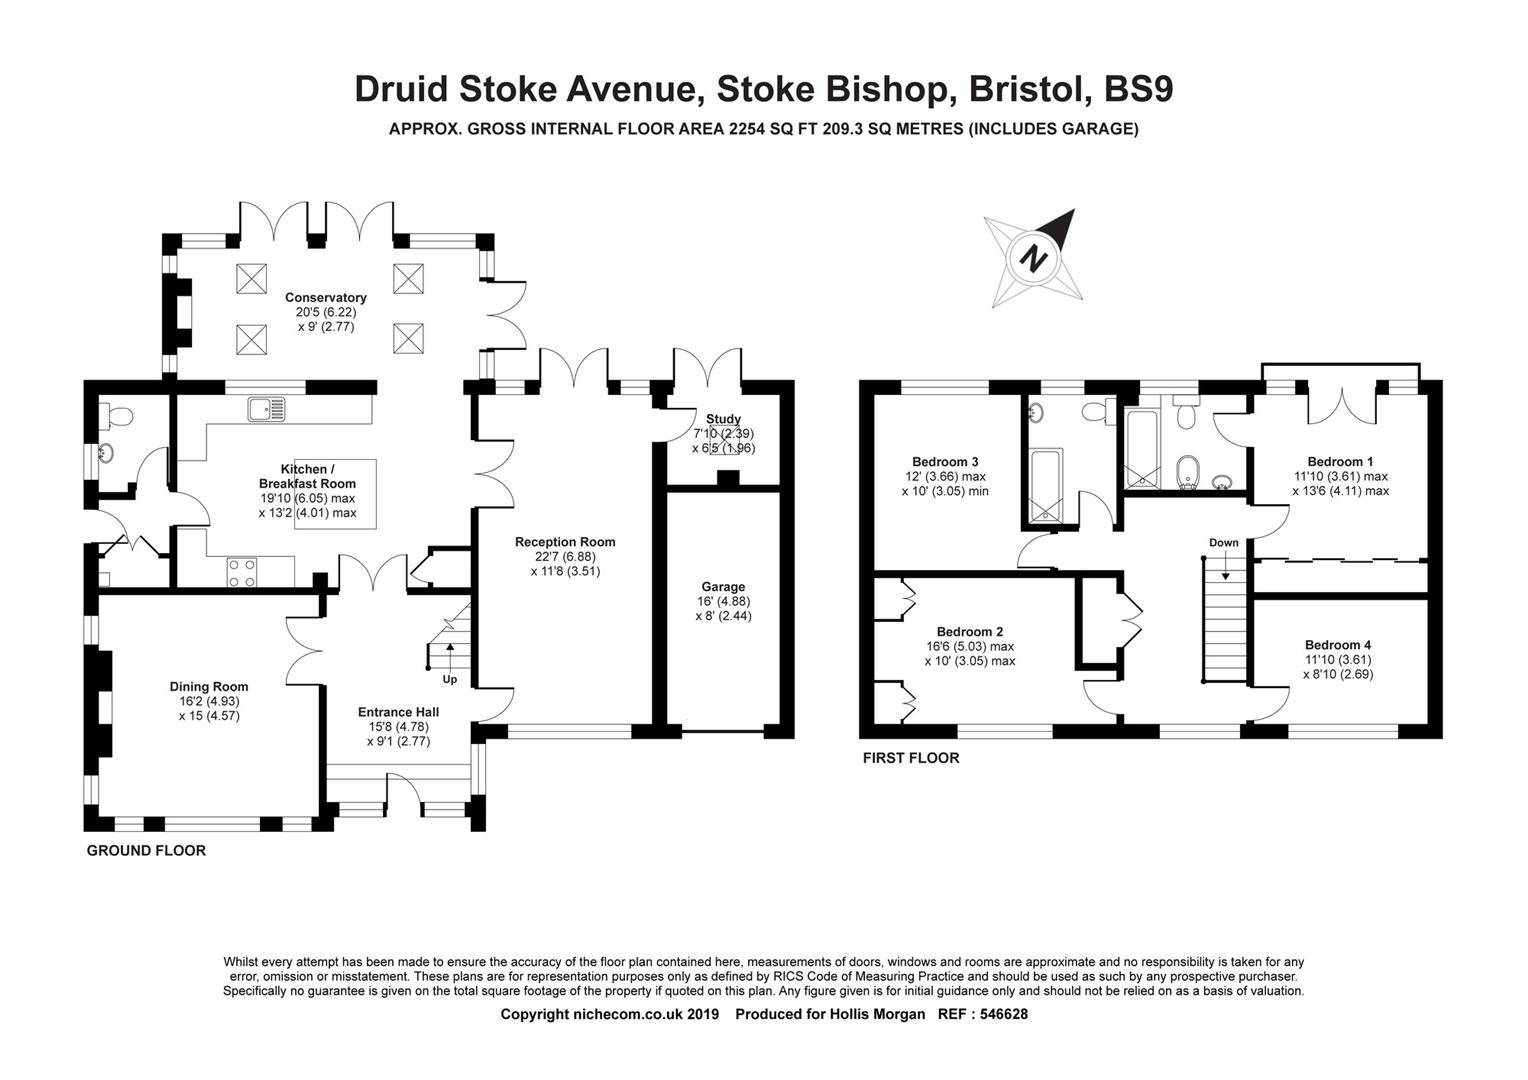 Floorplans For Druid Stoke Avenue, Stoke Bishop